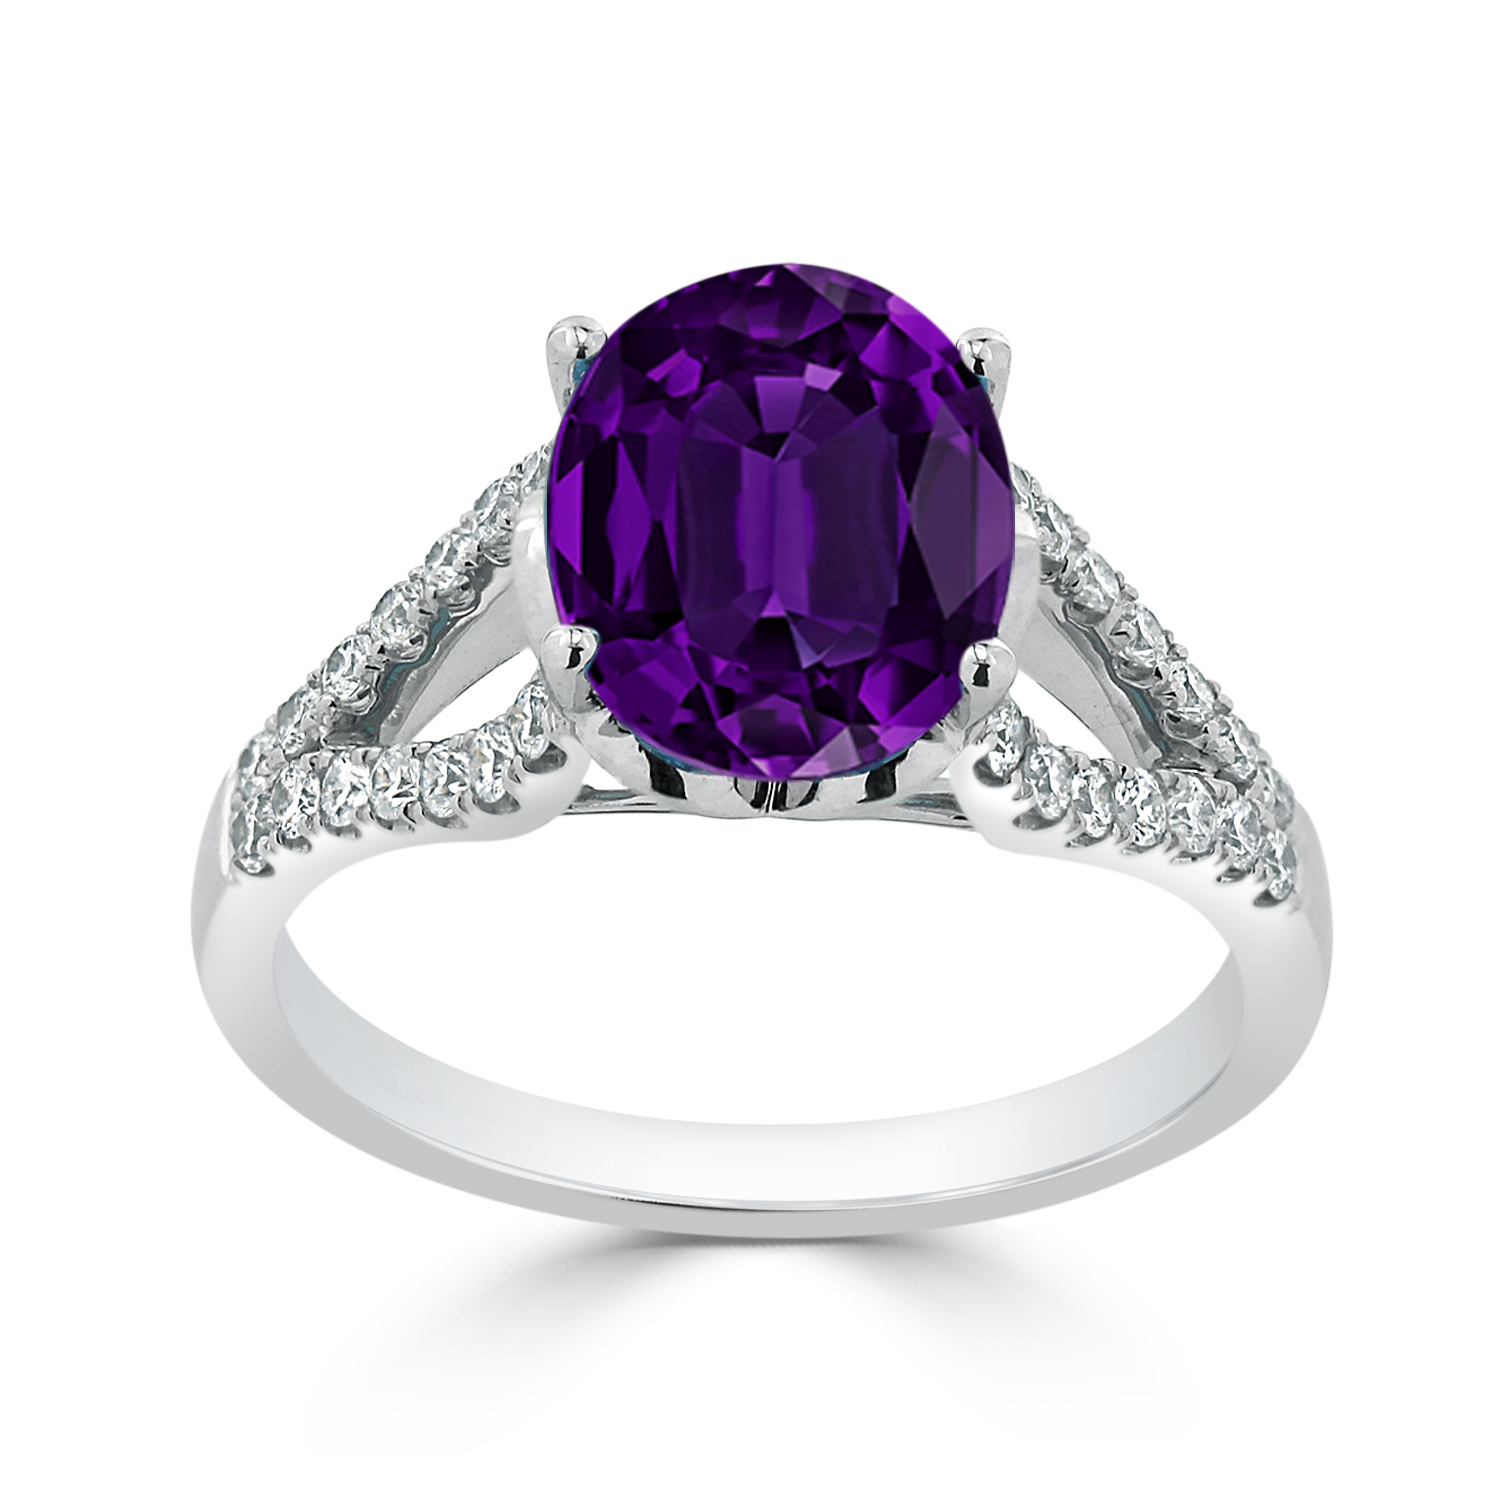 Halo Purple Amethyst Diamond Ring in 14K White Gold with 2.30 carat Oval Purple Amethyst